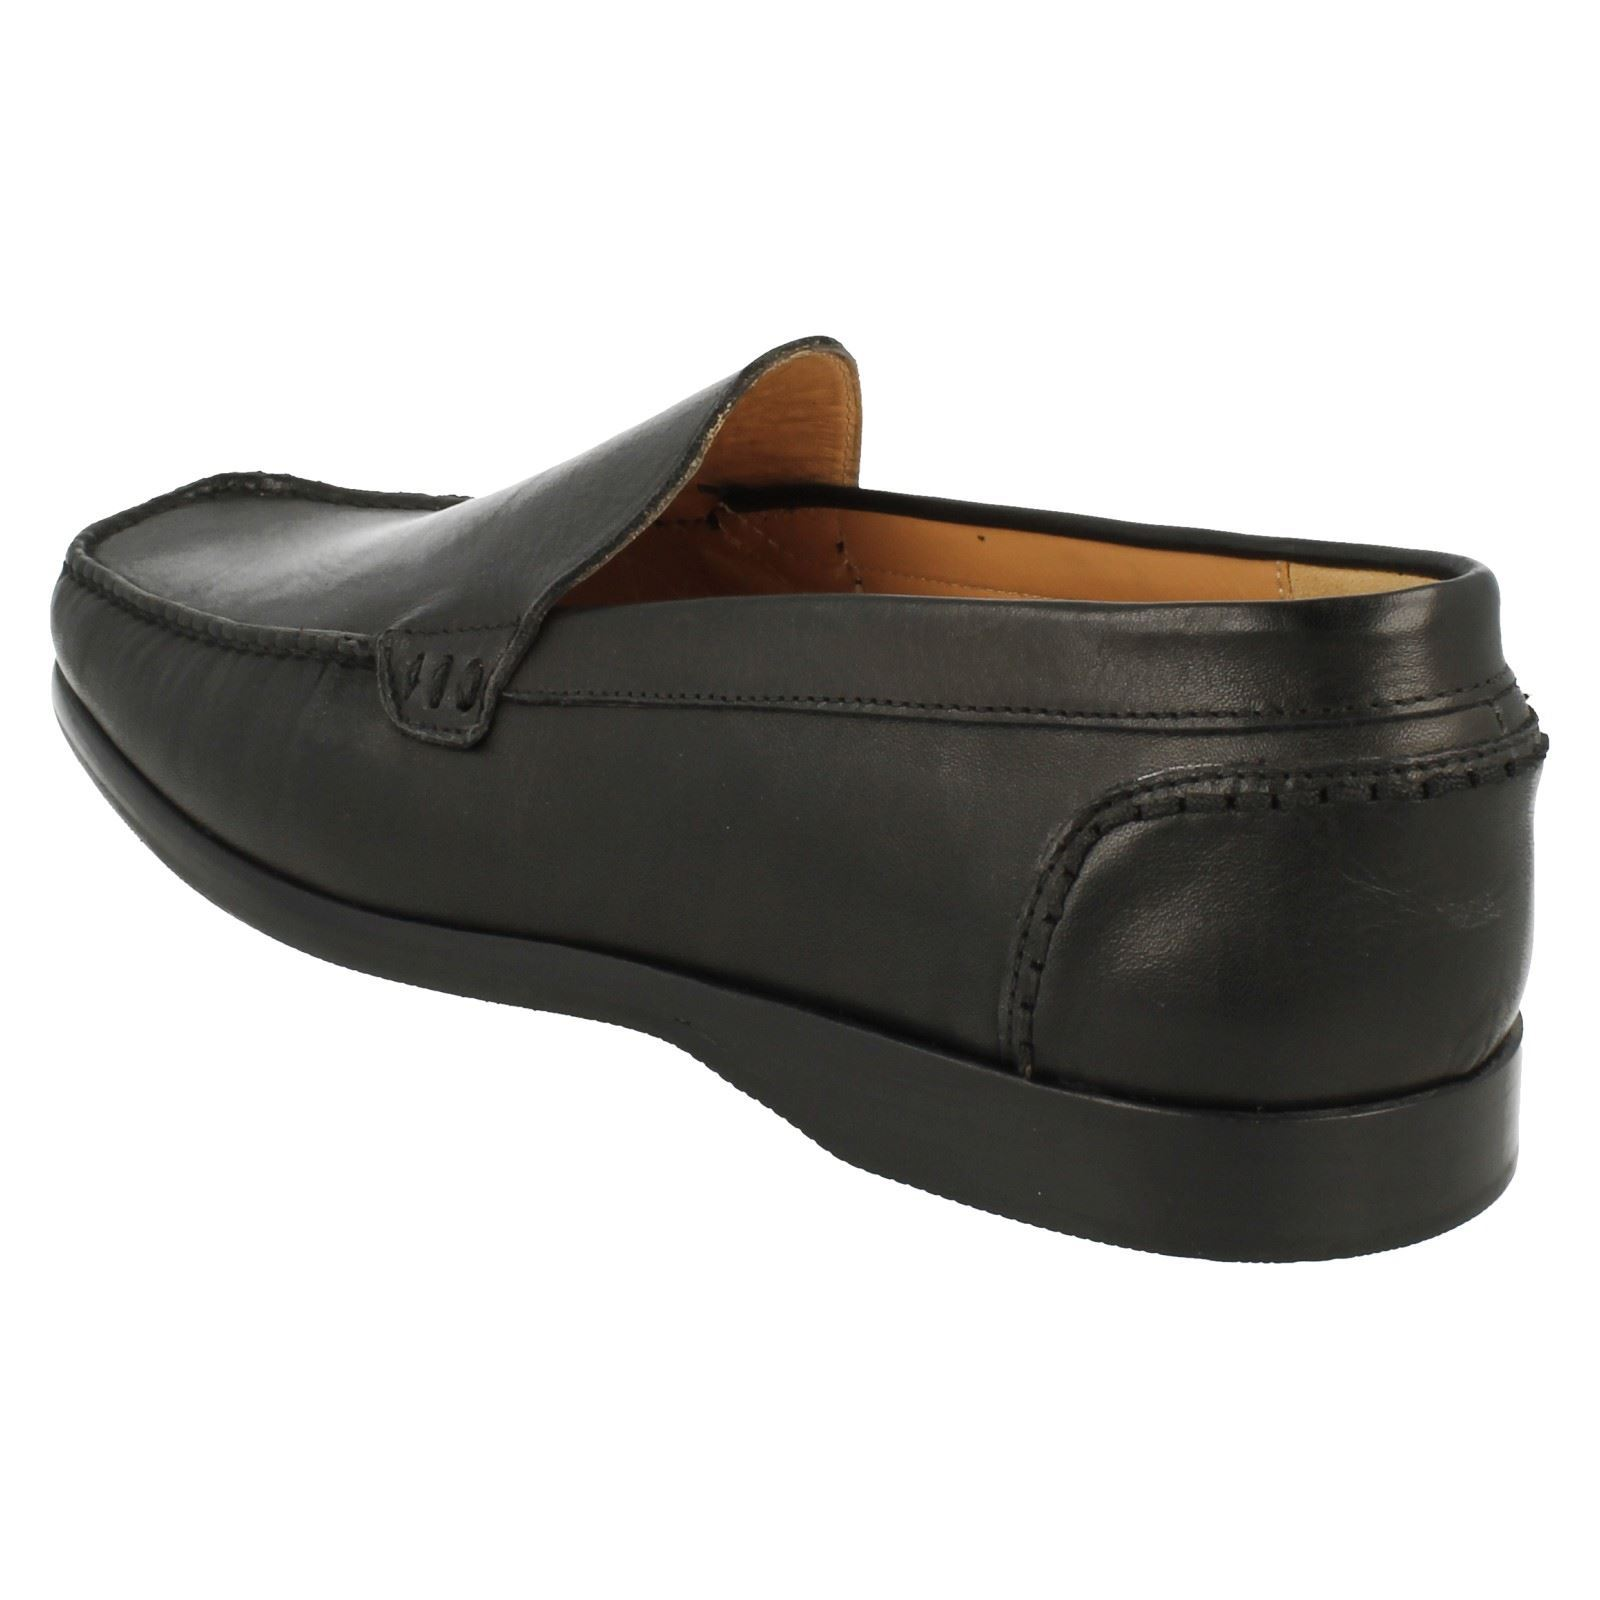 Mens Grenson Moccasin Shoes /'Cardiff/'